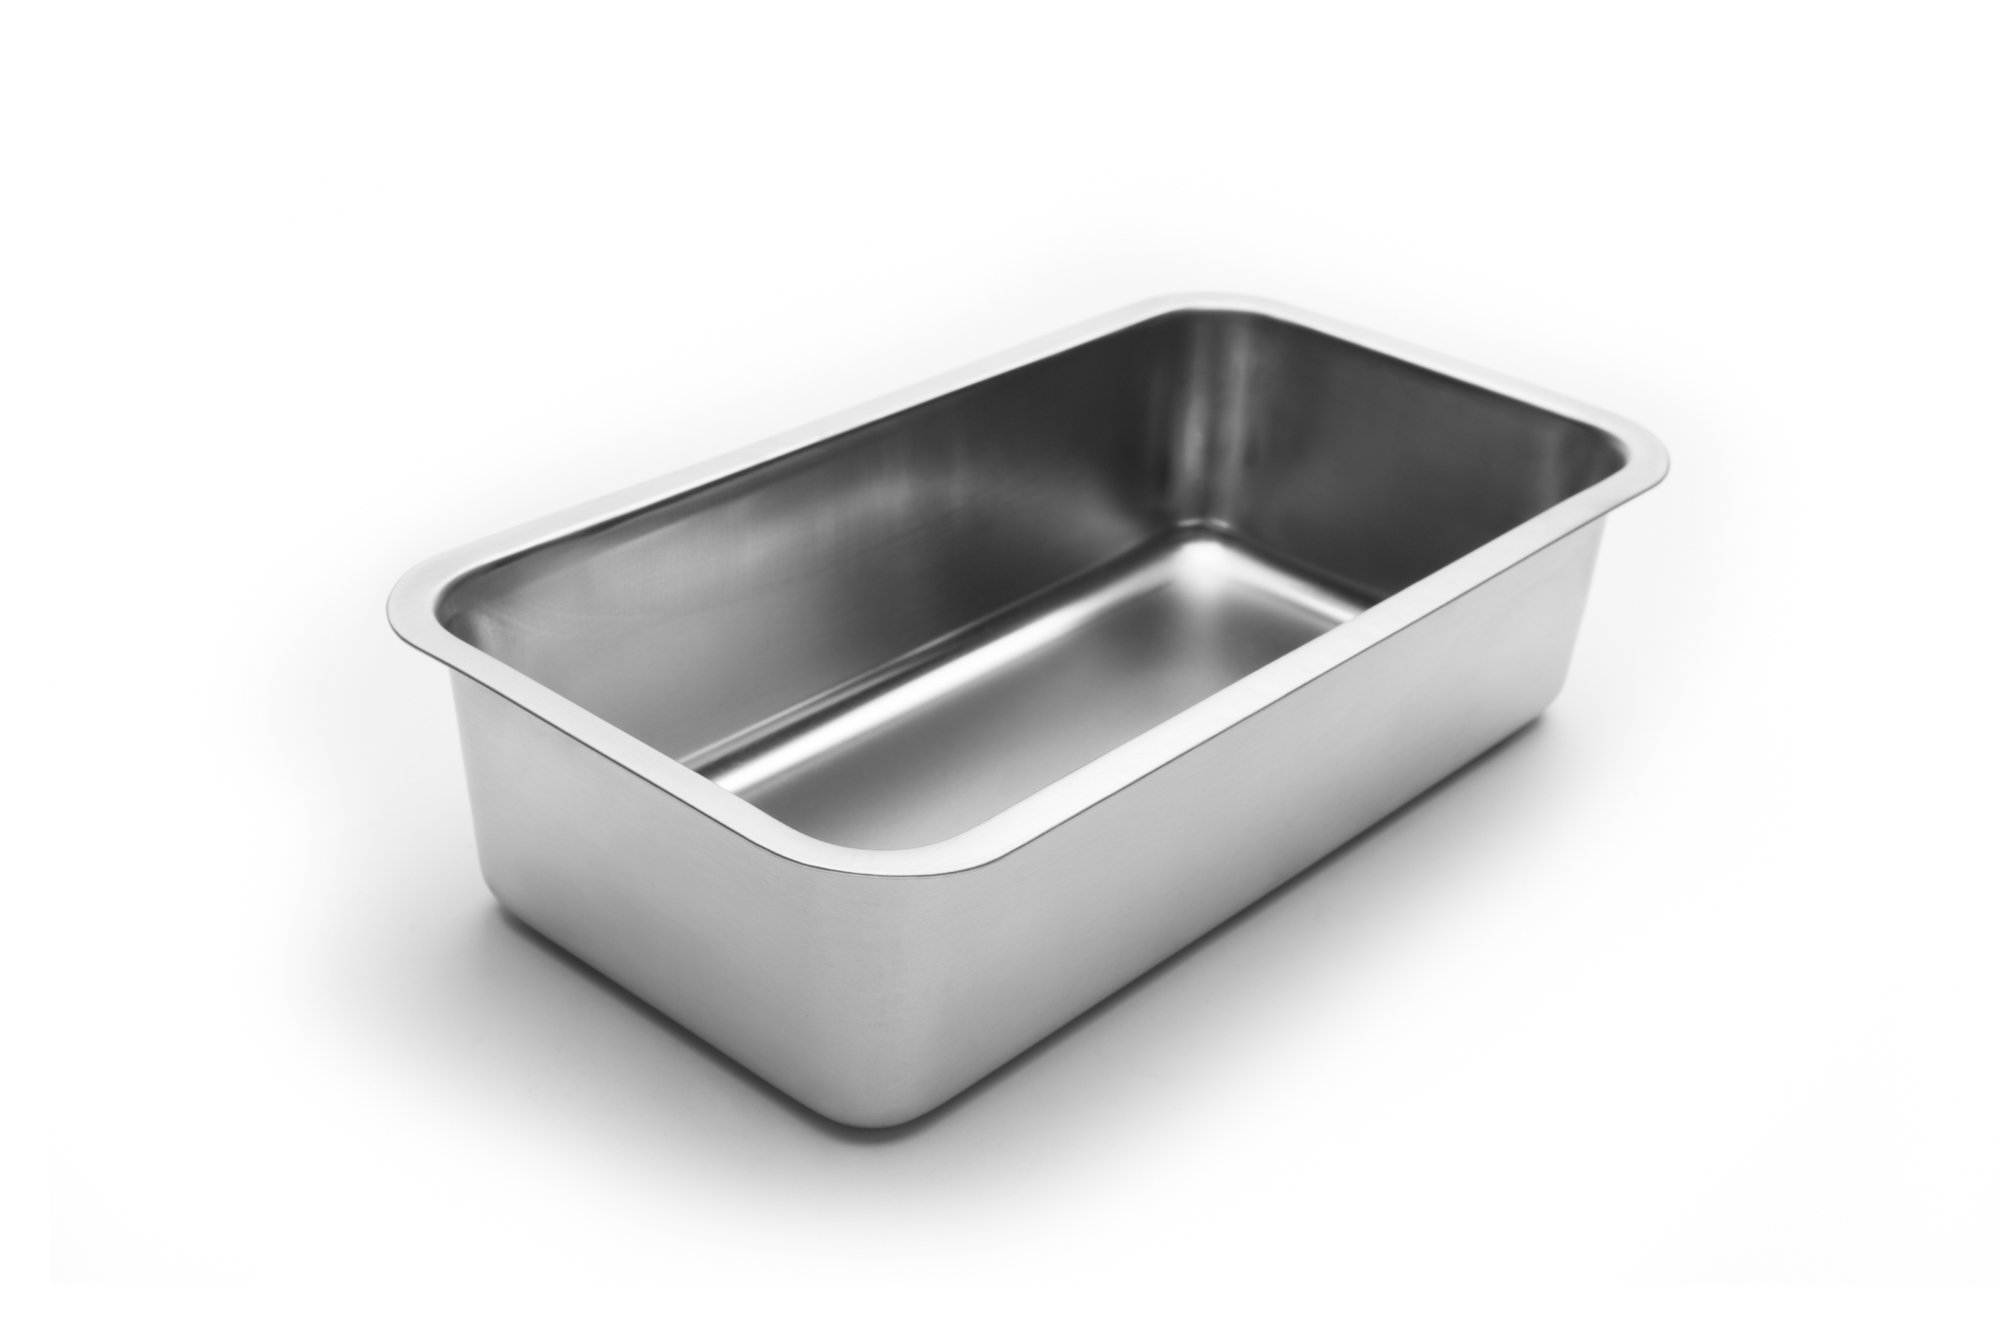 Fox Run 4854 Loaf Pan, Stainless Steel by Fox Run